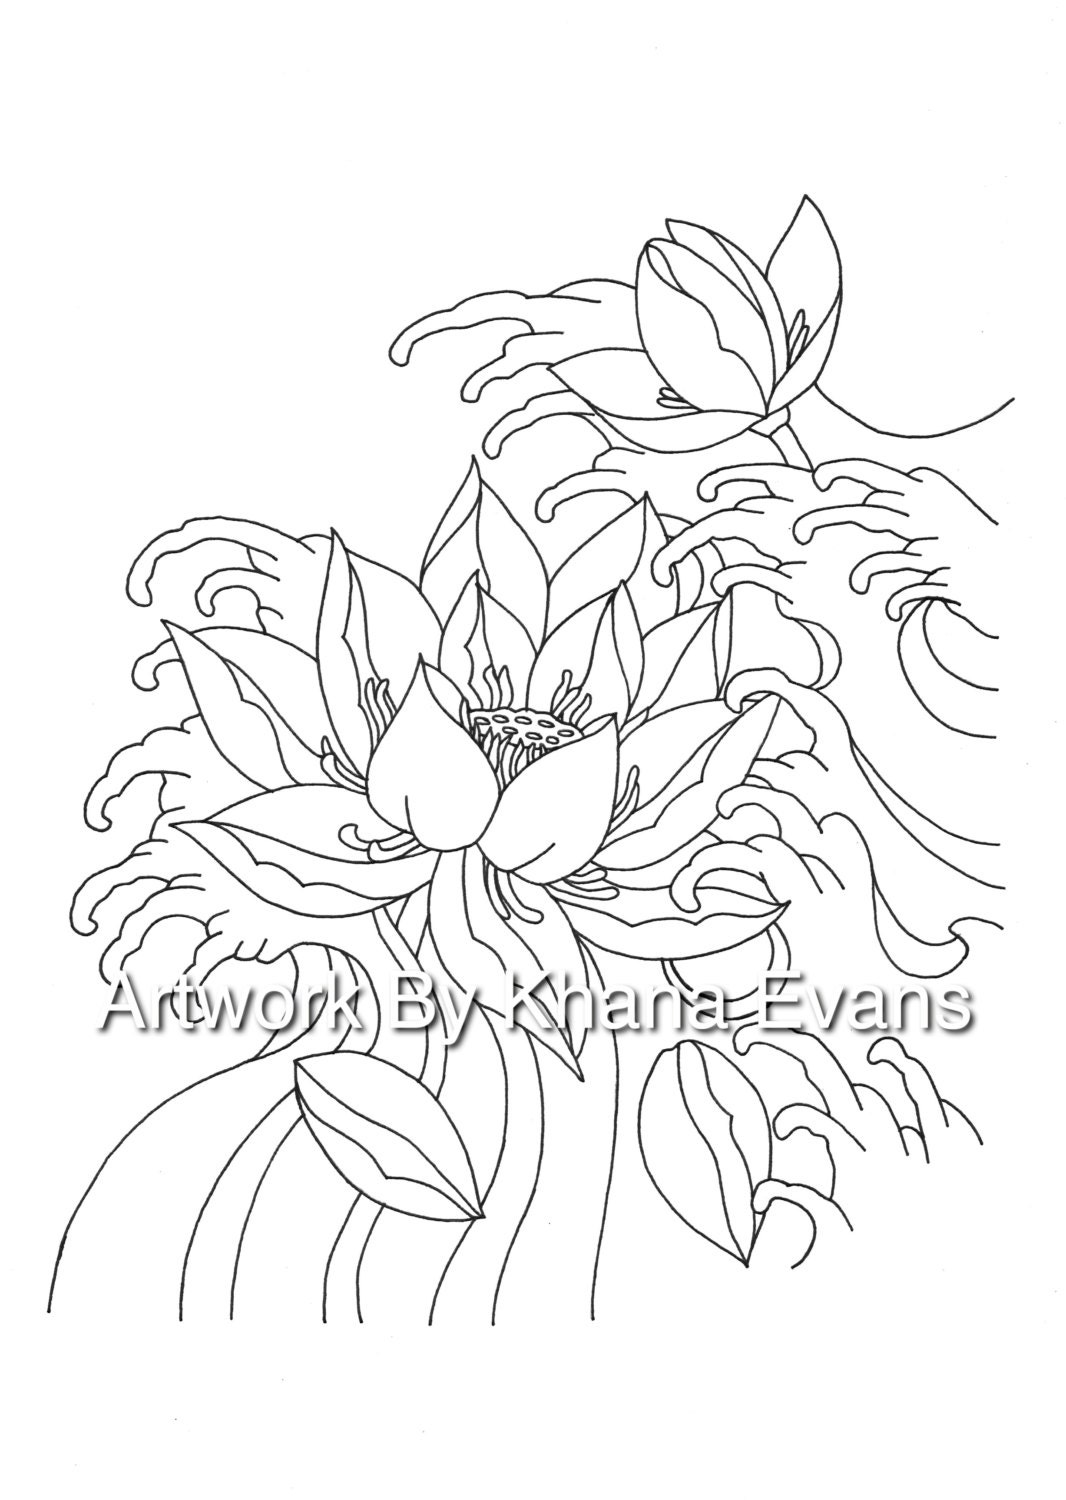 Japanese Lotus Flower Tattoo Design Pdf A4 Printout Colouring Etsy